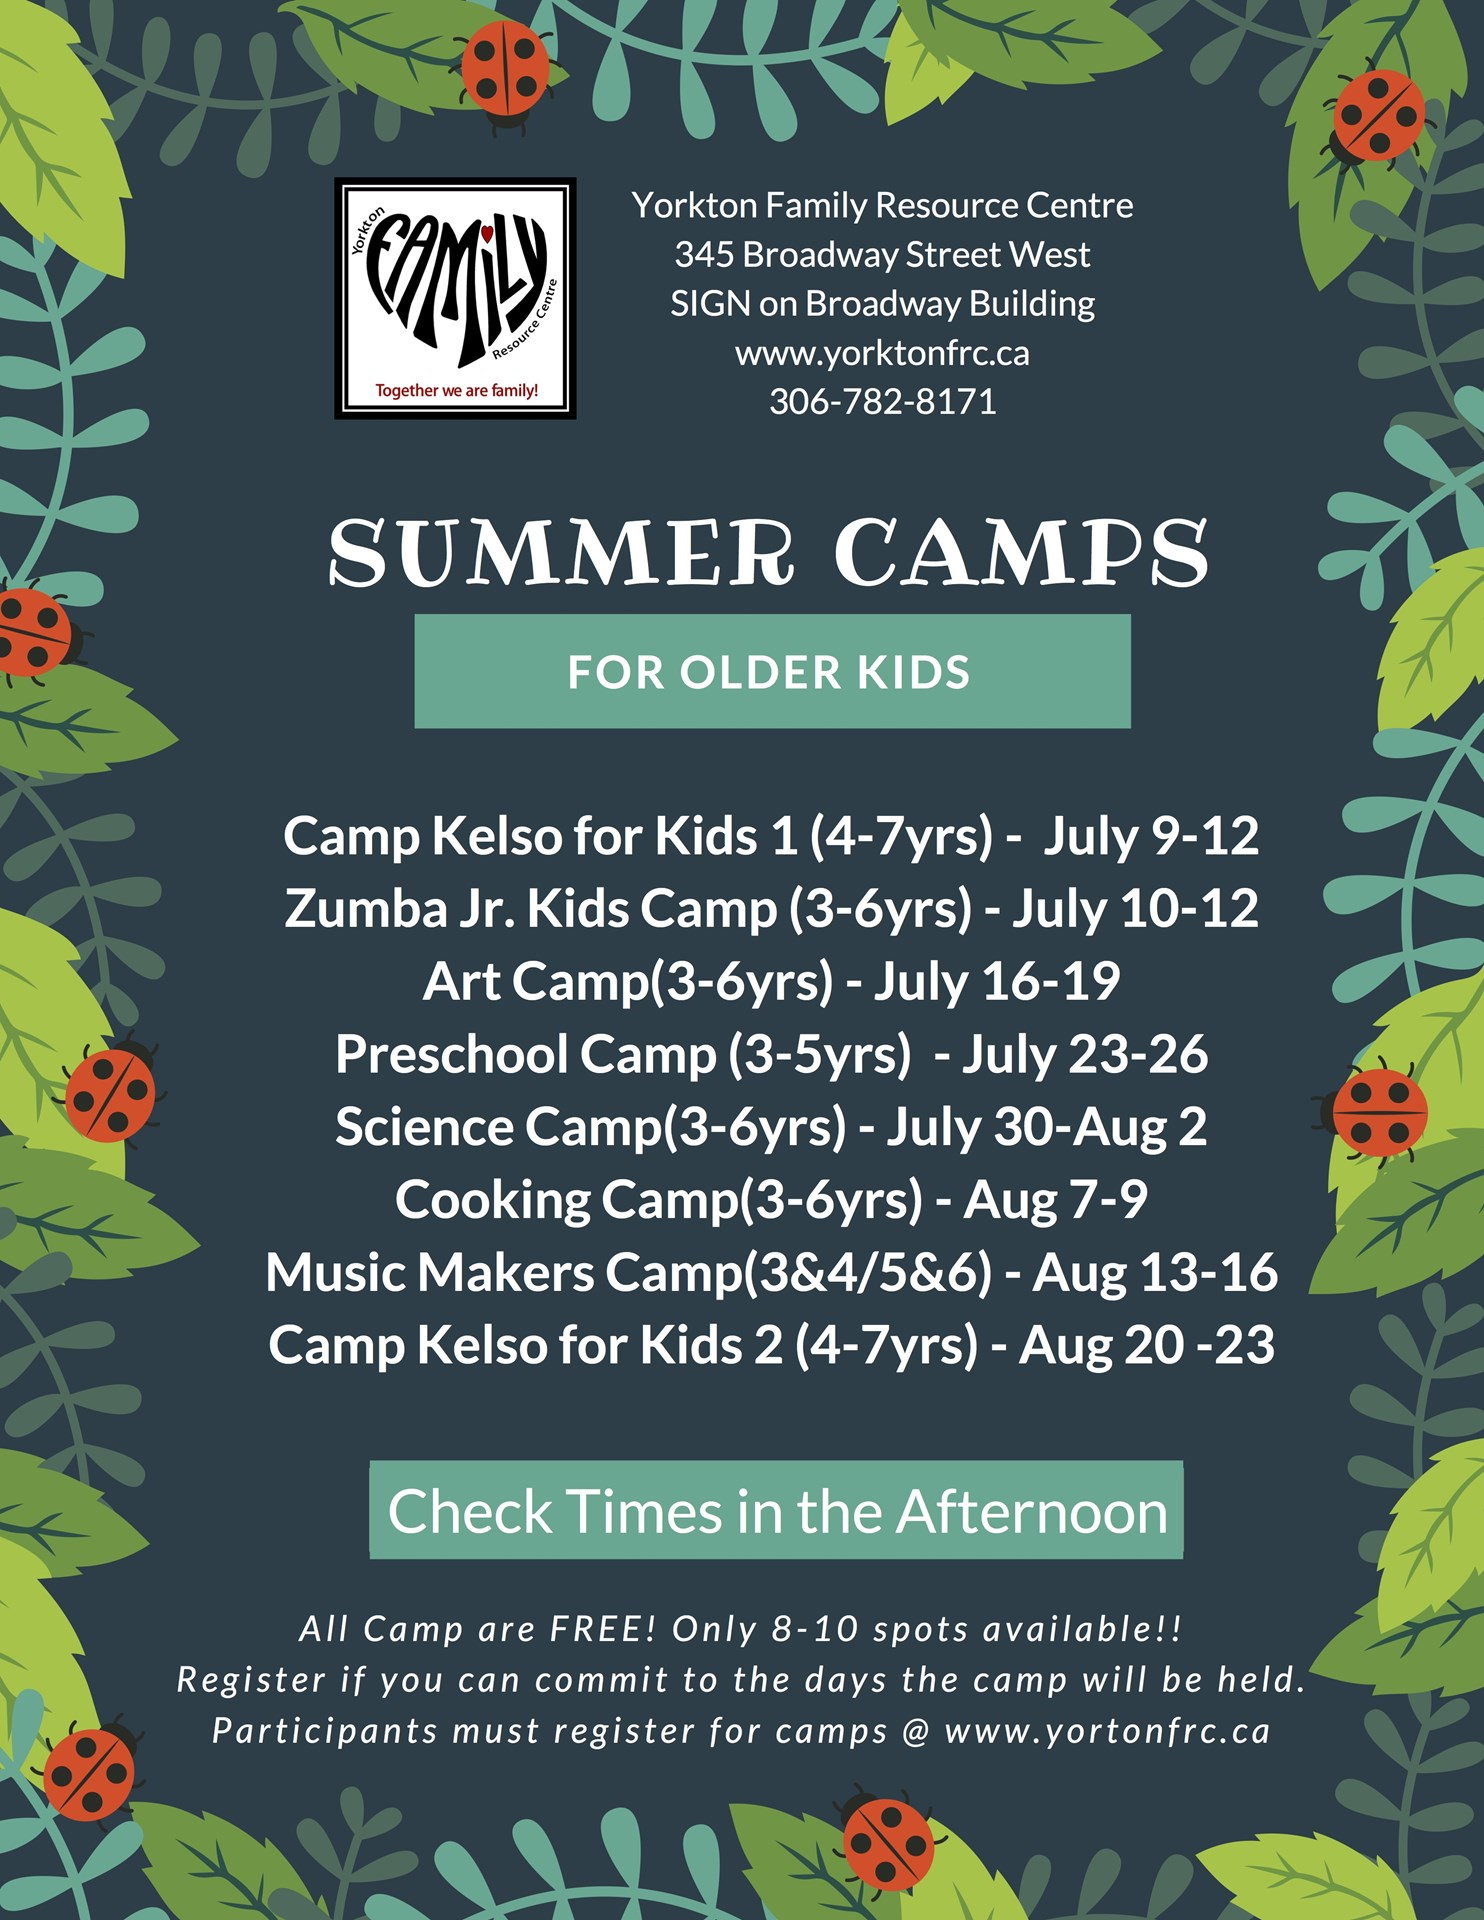 Yorkton Family Resource Centre Summer Camps